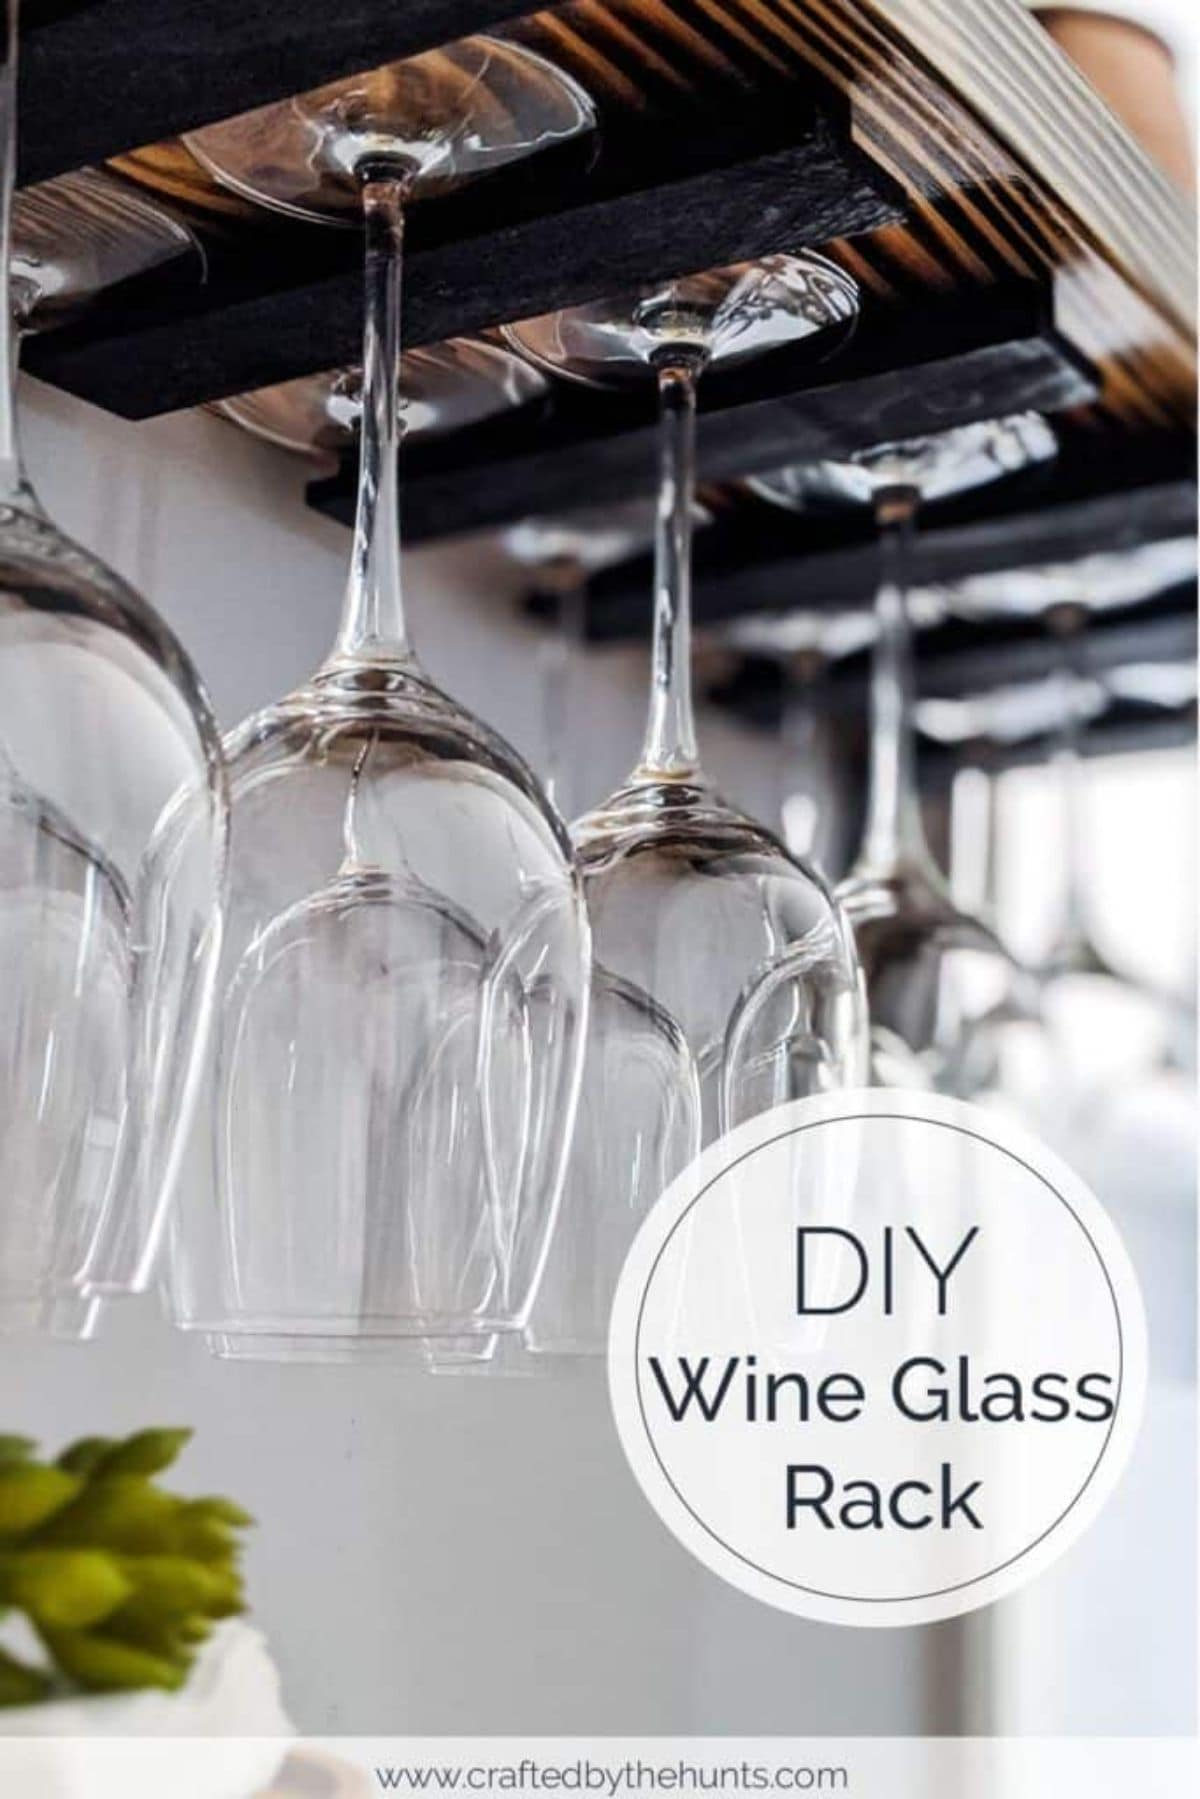 A wine glass rack made of dark wood with large win glasses hooked upside down from it